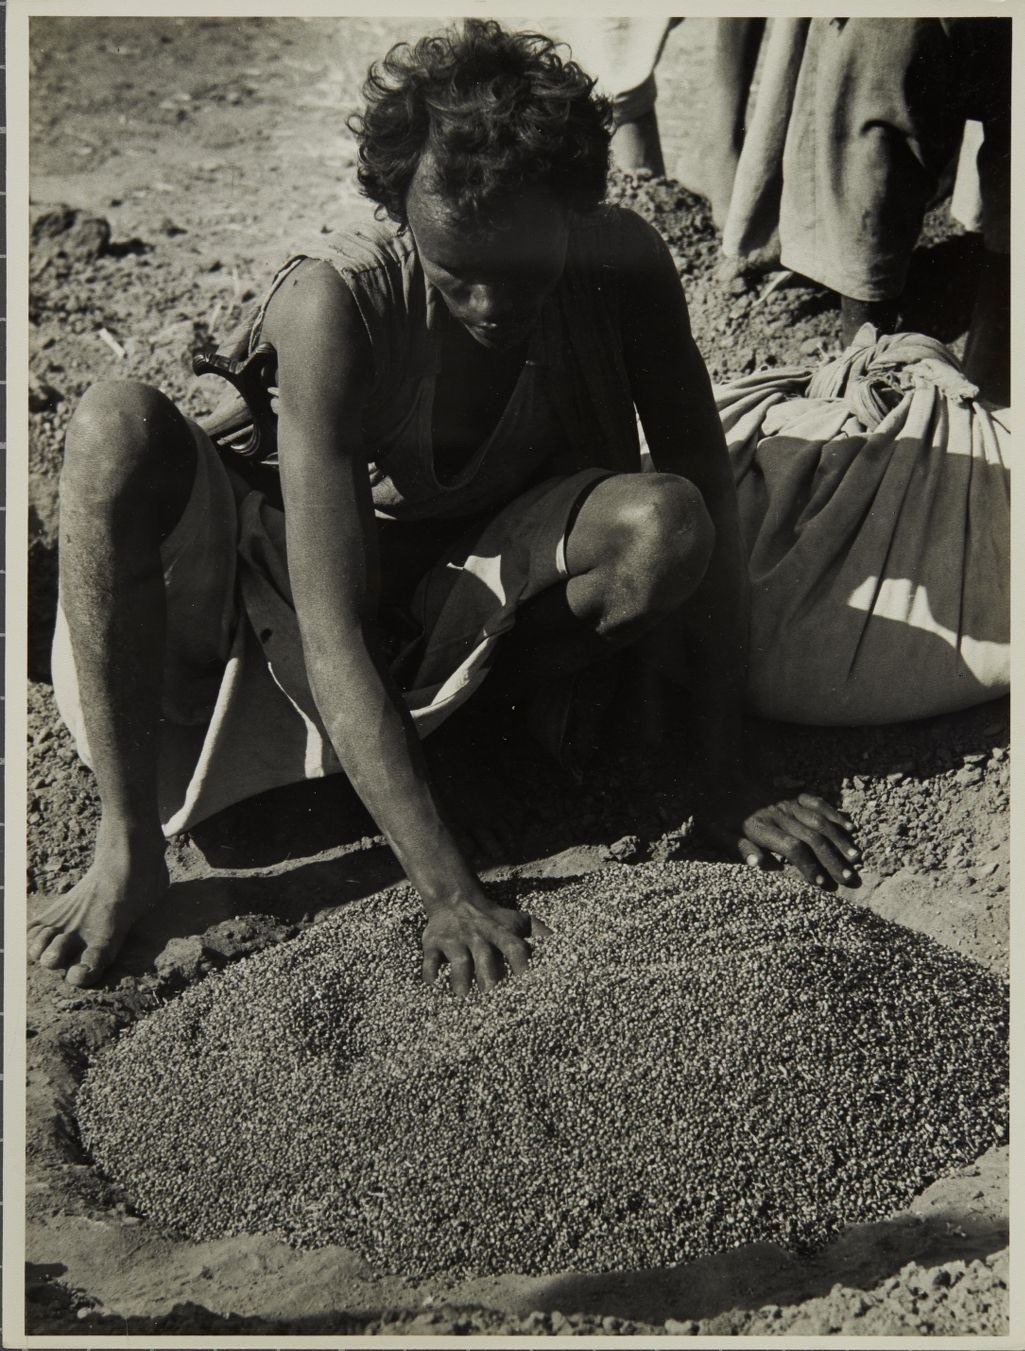 Storing grain in fills - Kassala Province, Sudan